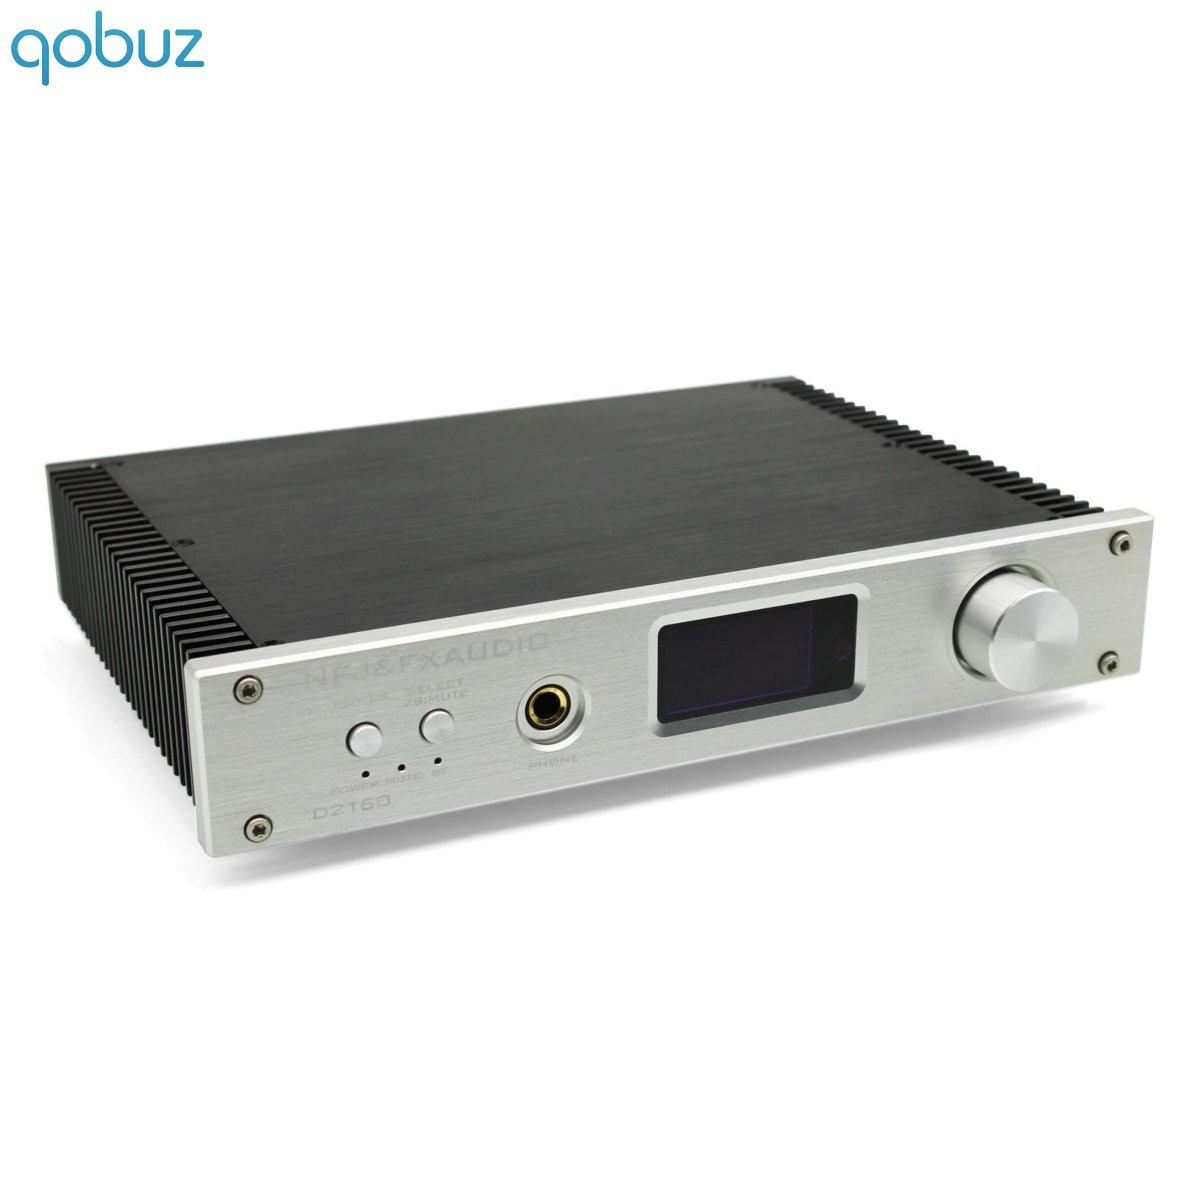 FX-AUDIO D2160 FDA Amplifier Bluetooth 5 TAS5614 2x125W 4 Ohms Silver